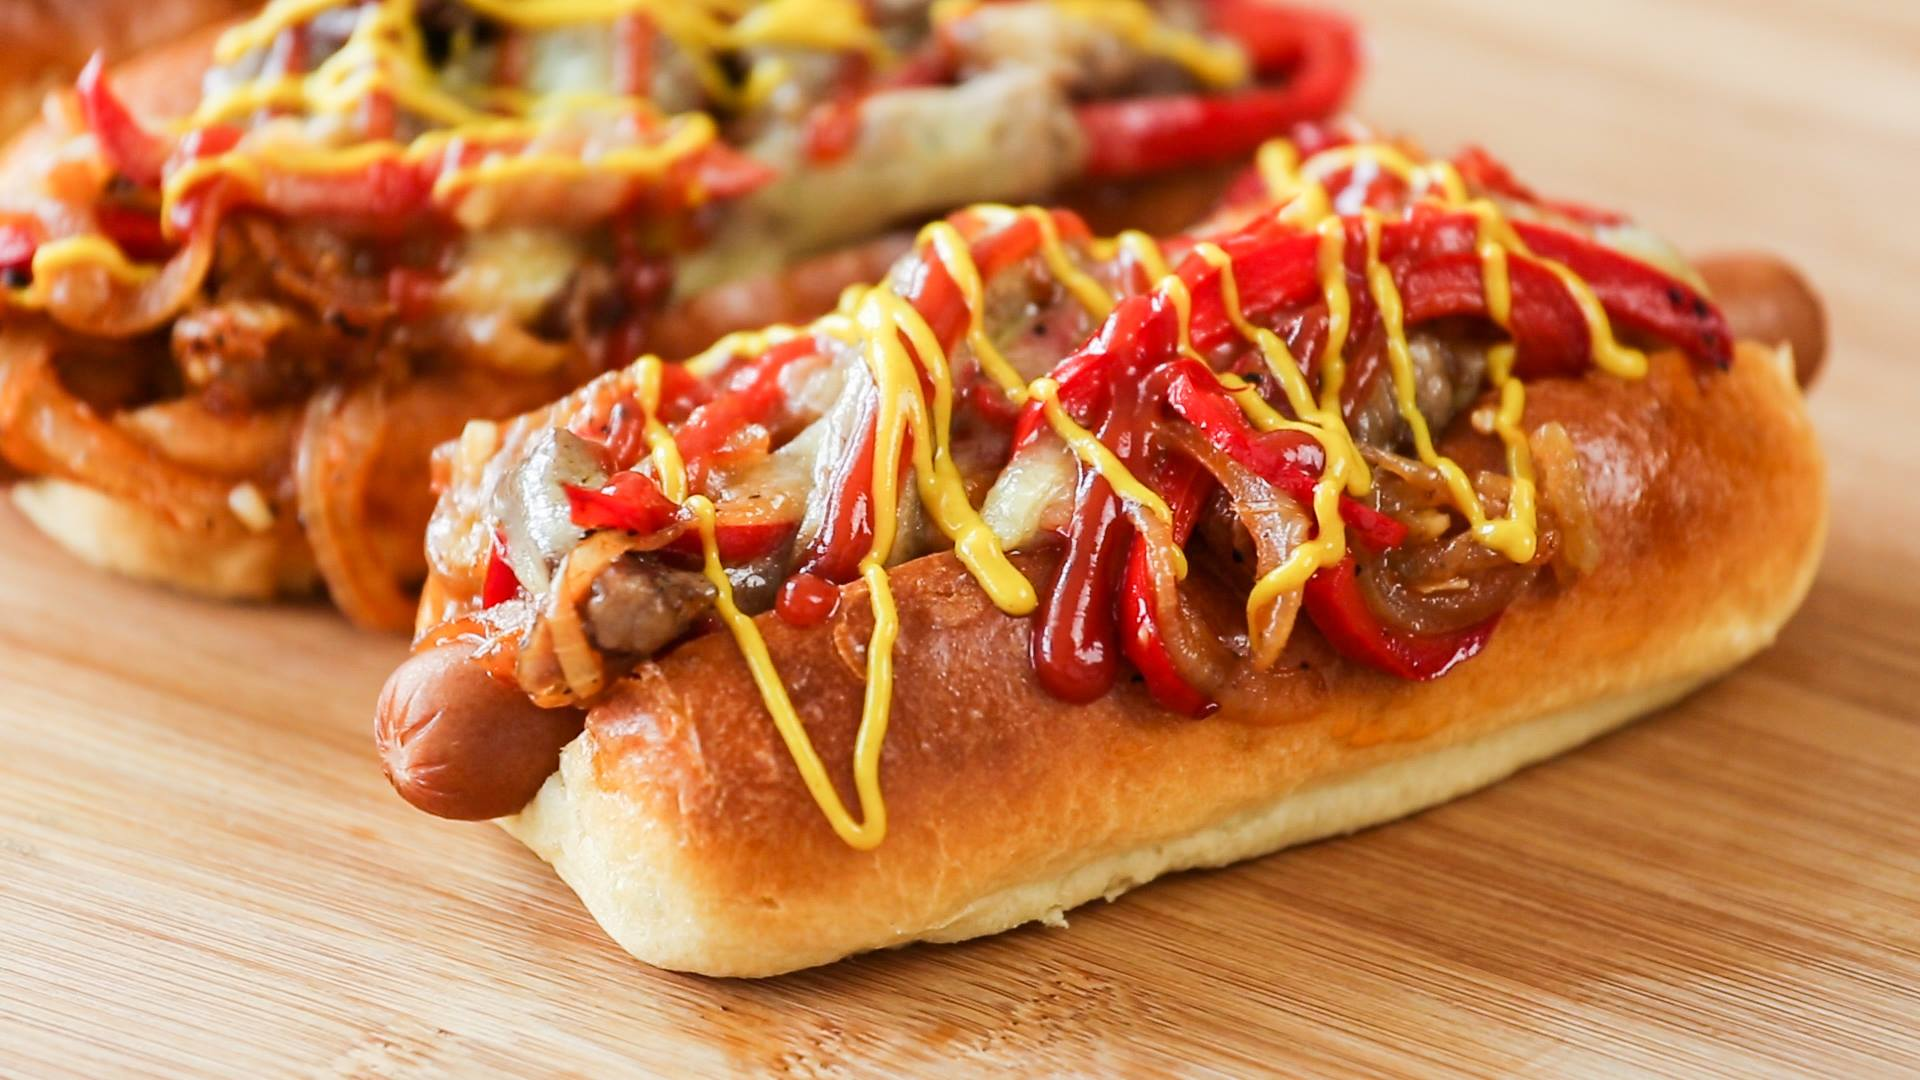 13247754 10154124023989361 5754164824392605826 o Heres How You Make Philly Cheese Steak Dogs